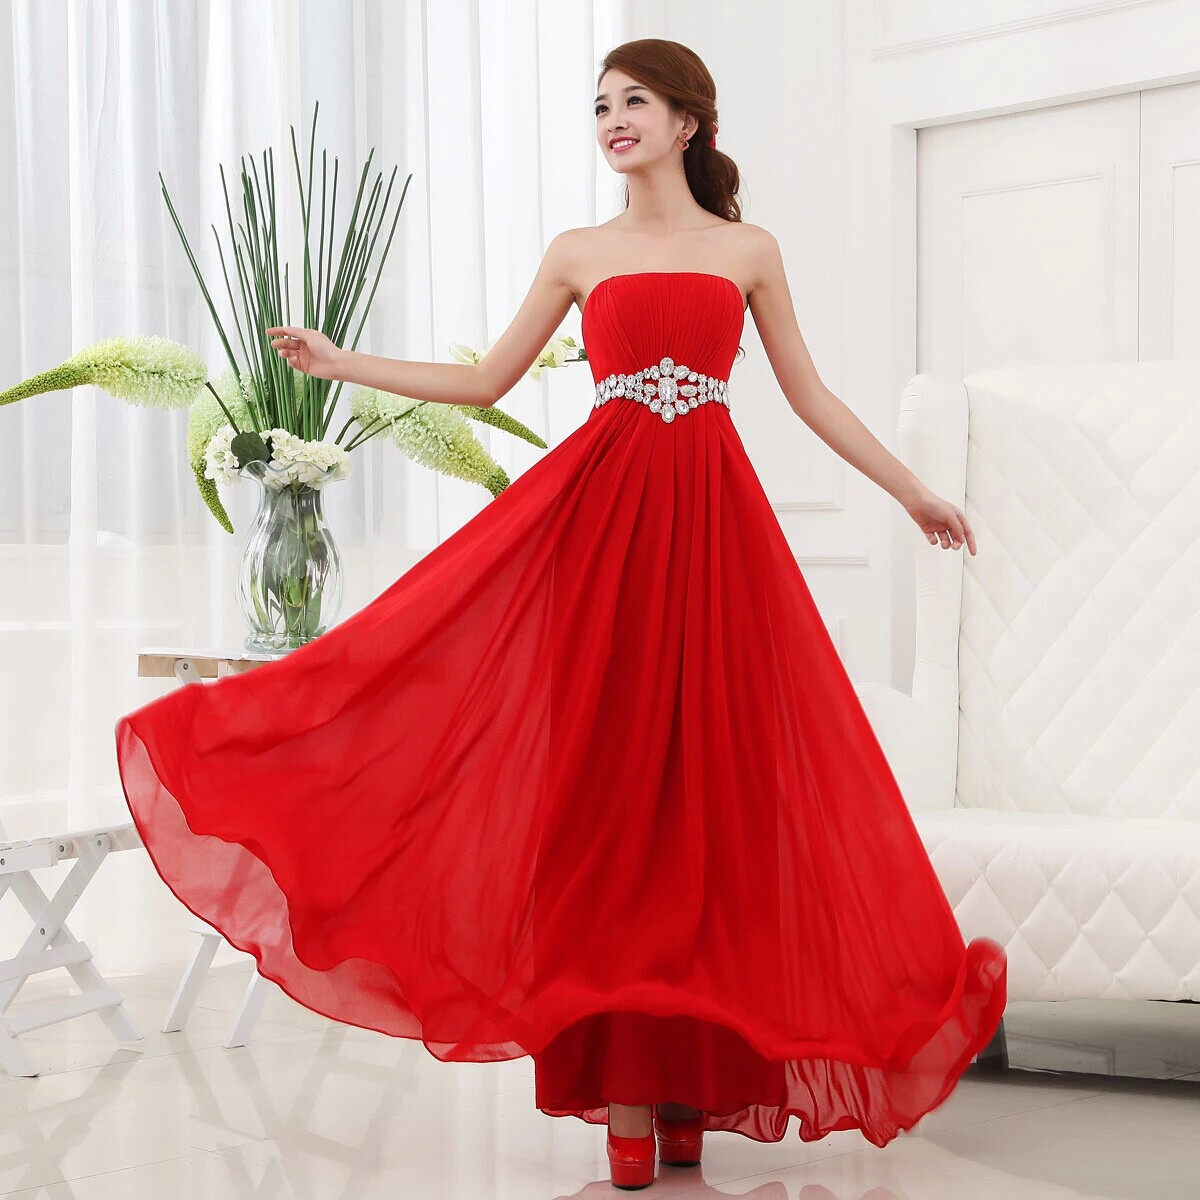 Pregnant women dress evening dress The new 2015 strapless together with evening dress The maid of honor toast wedding fell to the red dress